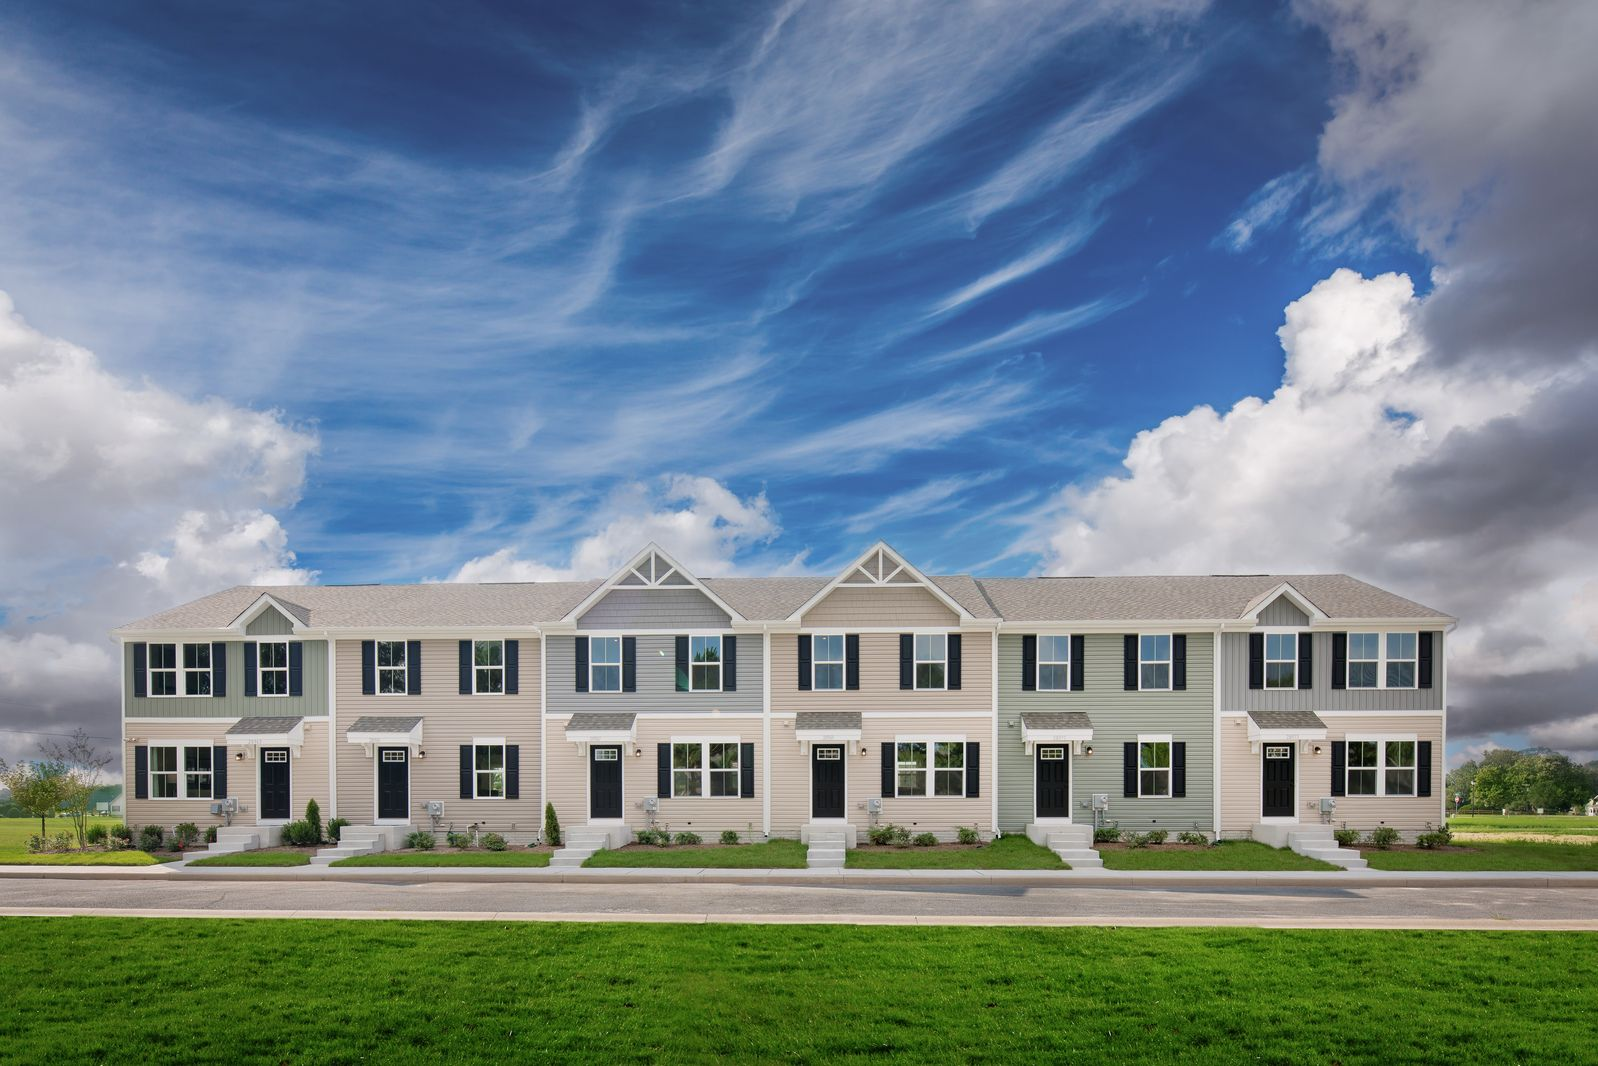 Become a Chesapeake Club VIP!:Click here to Join our VIP Listto receive special VIP pricing and incentives. Plus, receive new updates on the community and preview our model homes before we open to the public!